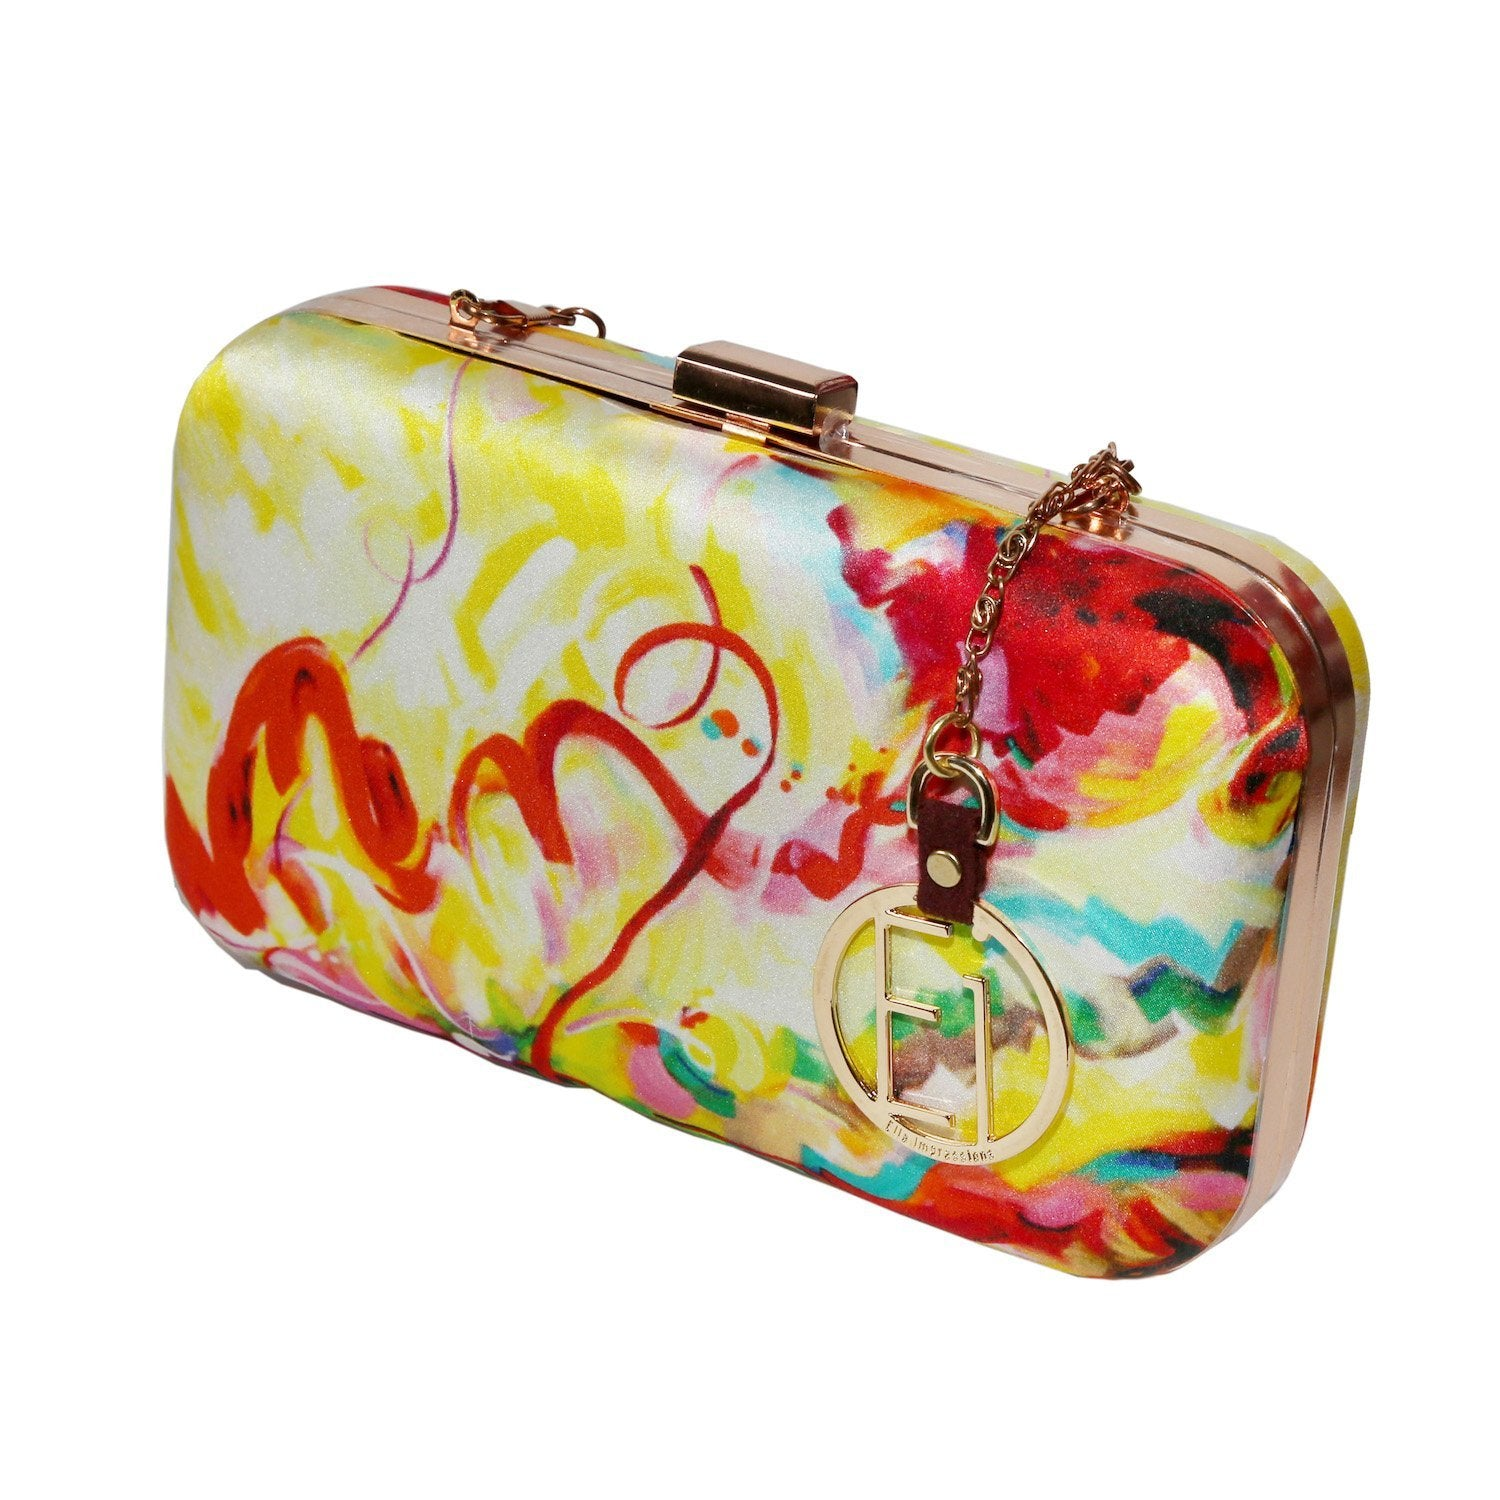 RUBELITE ART & DESIGN CLUTCH - The Clothing LoungeElla Impressions